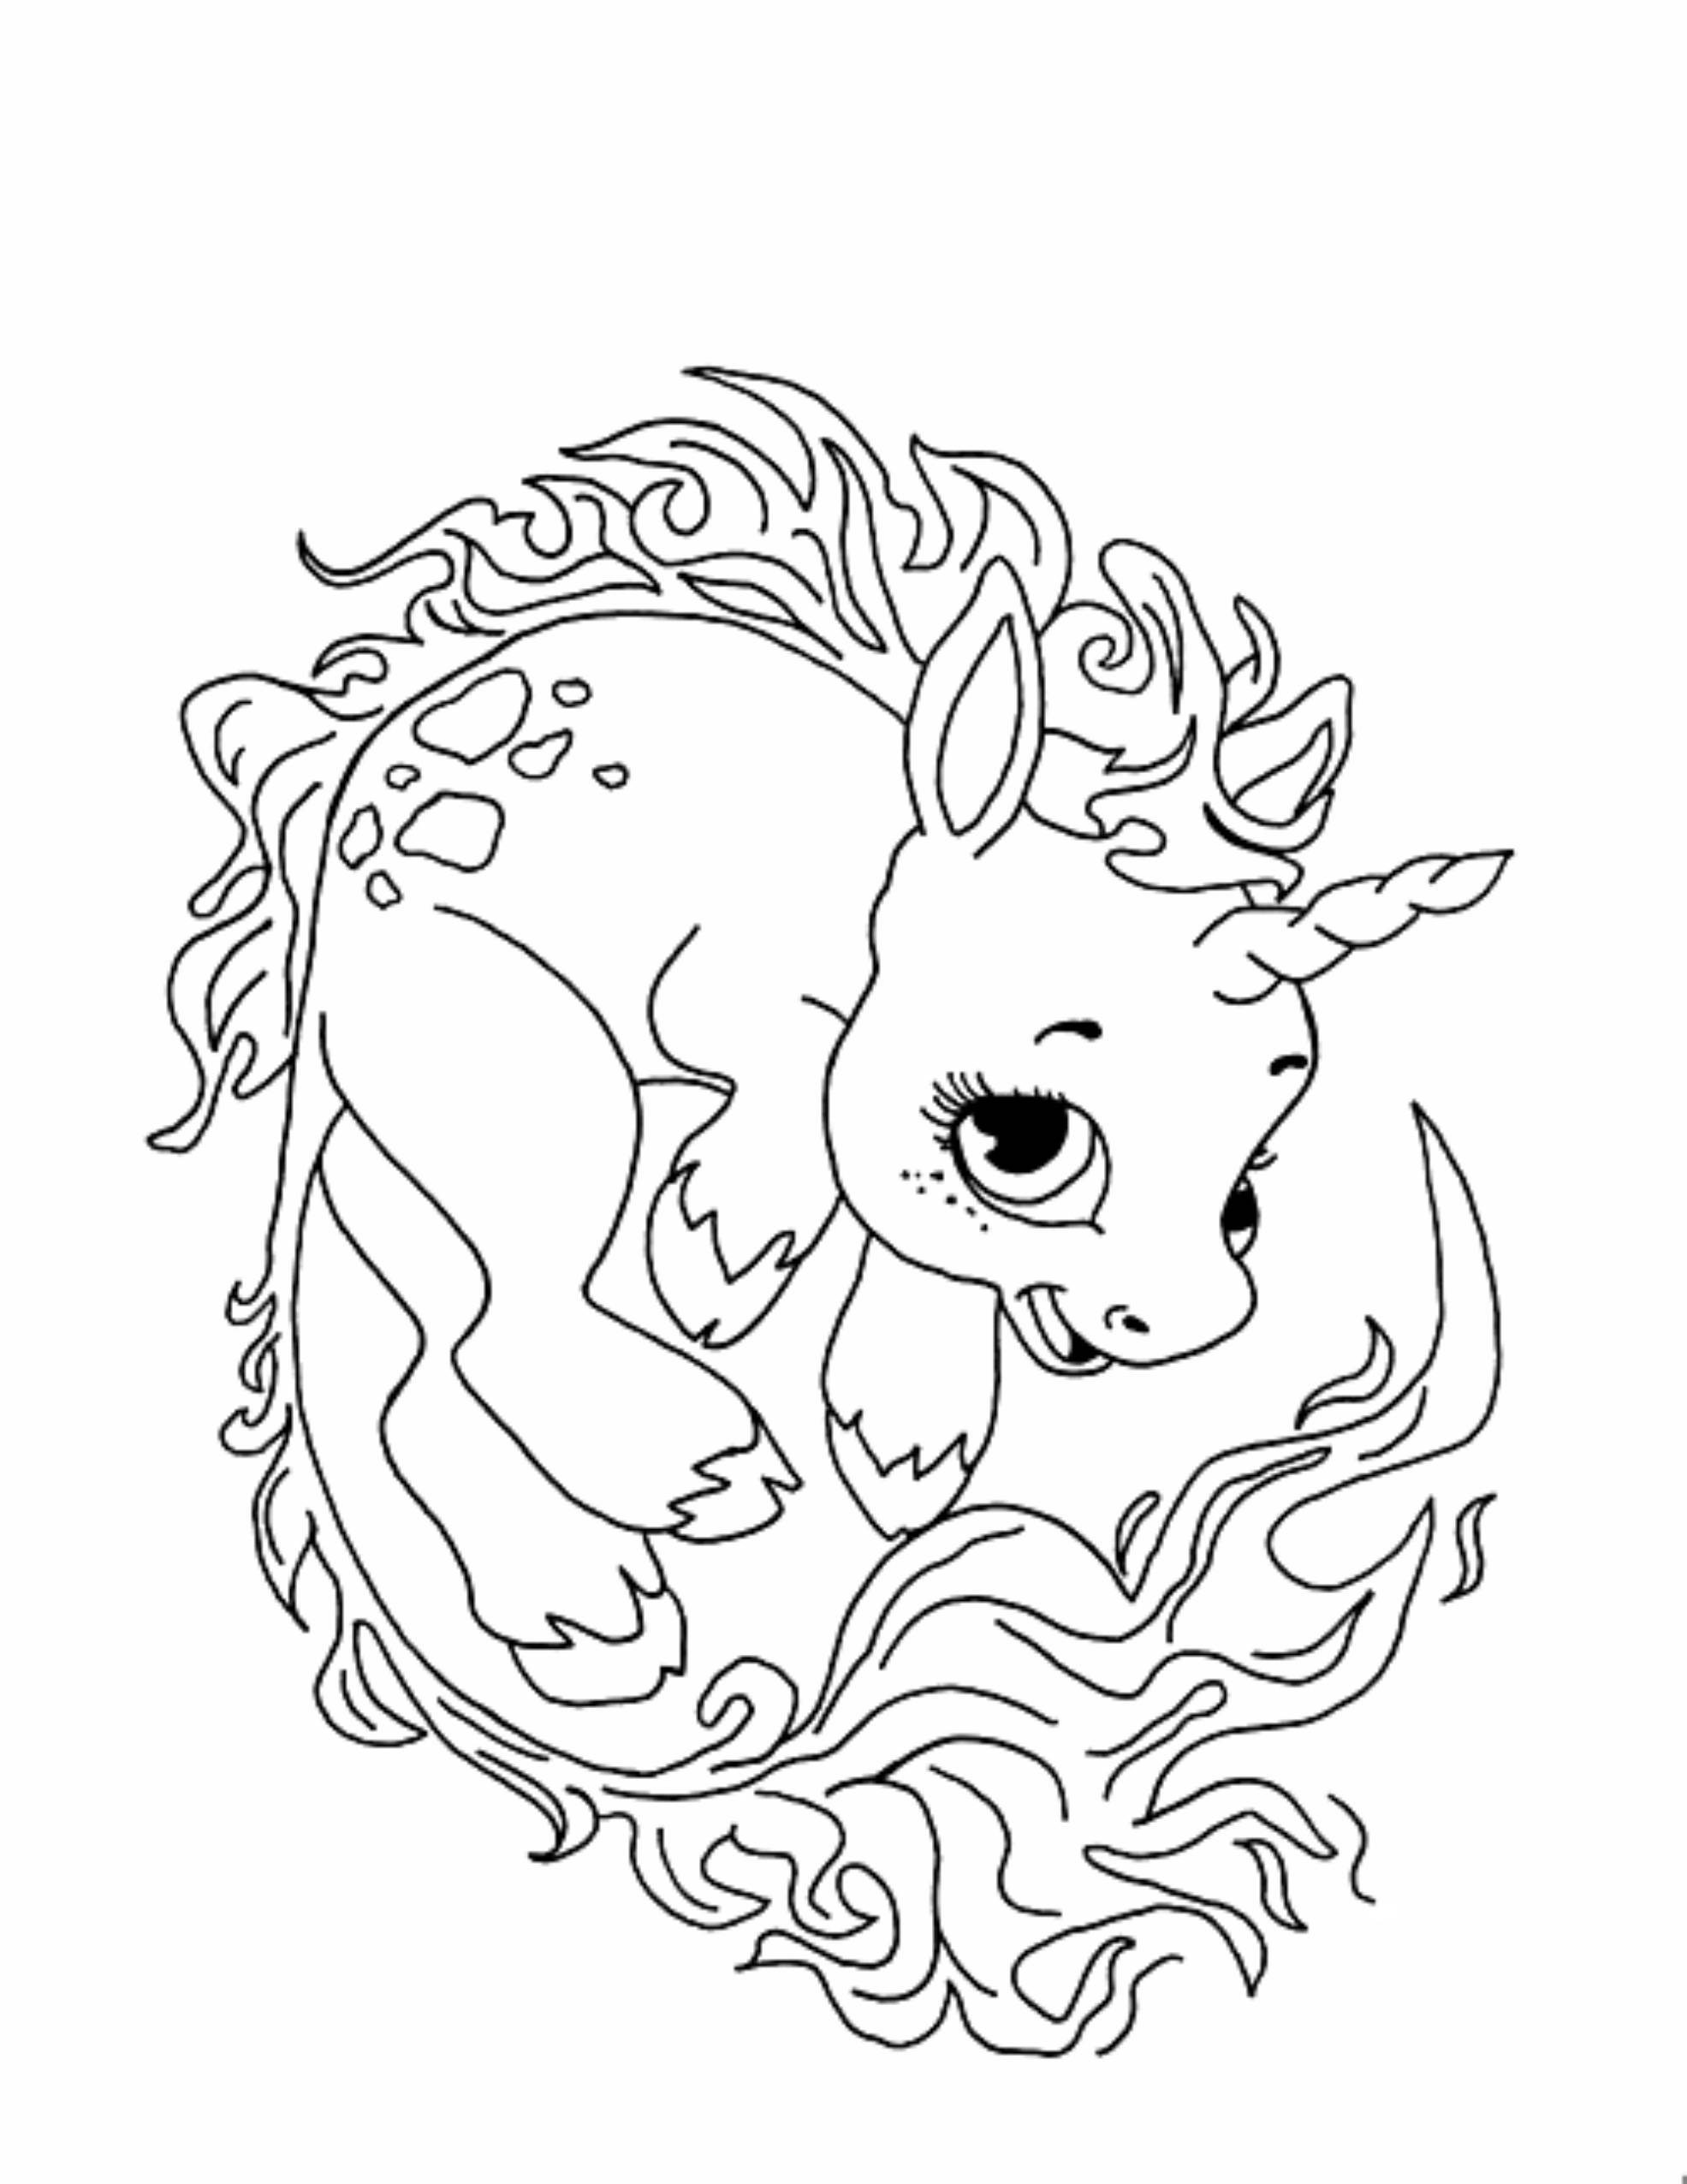 Cute Coloring Pages for Adults Bertmilne Printable Of Cute Coloring Pages for Girls Printable Kids Colouring Pages Kids Gallery